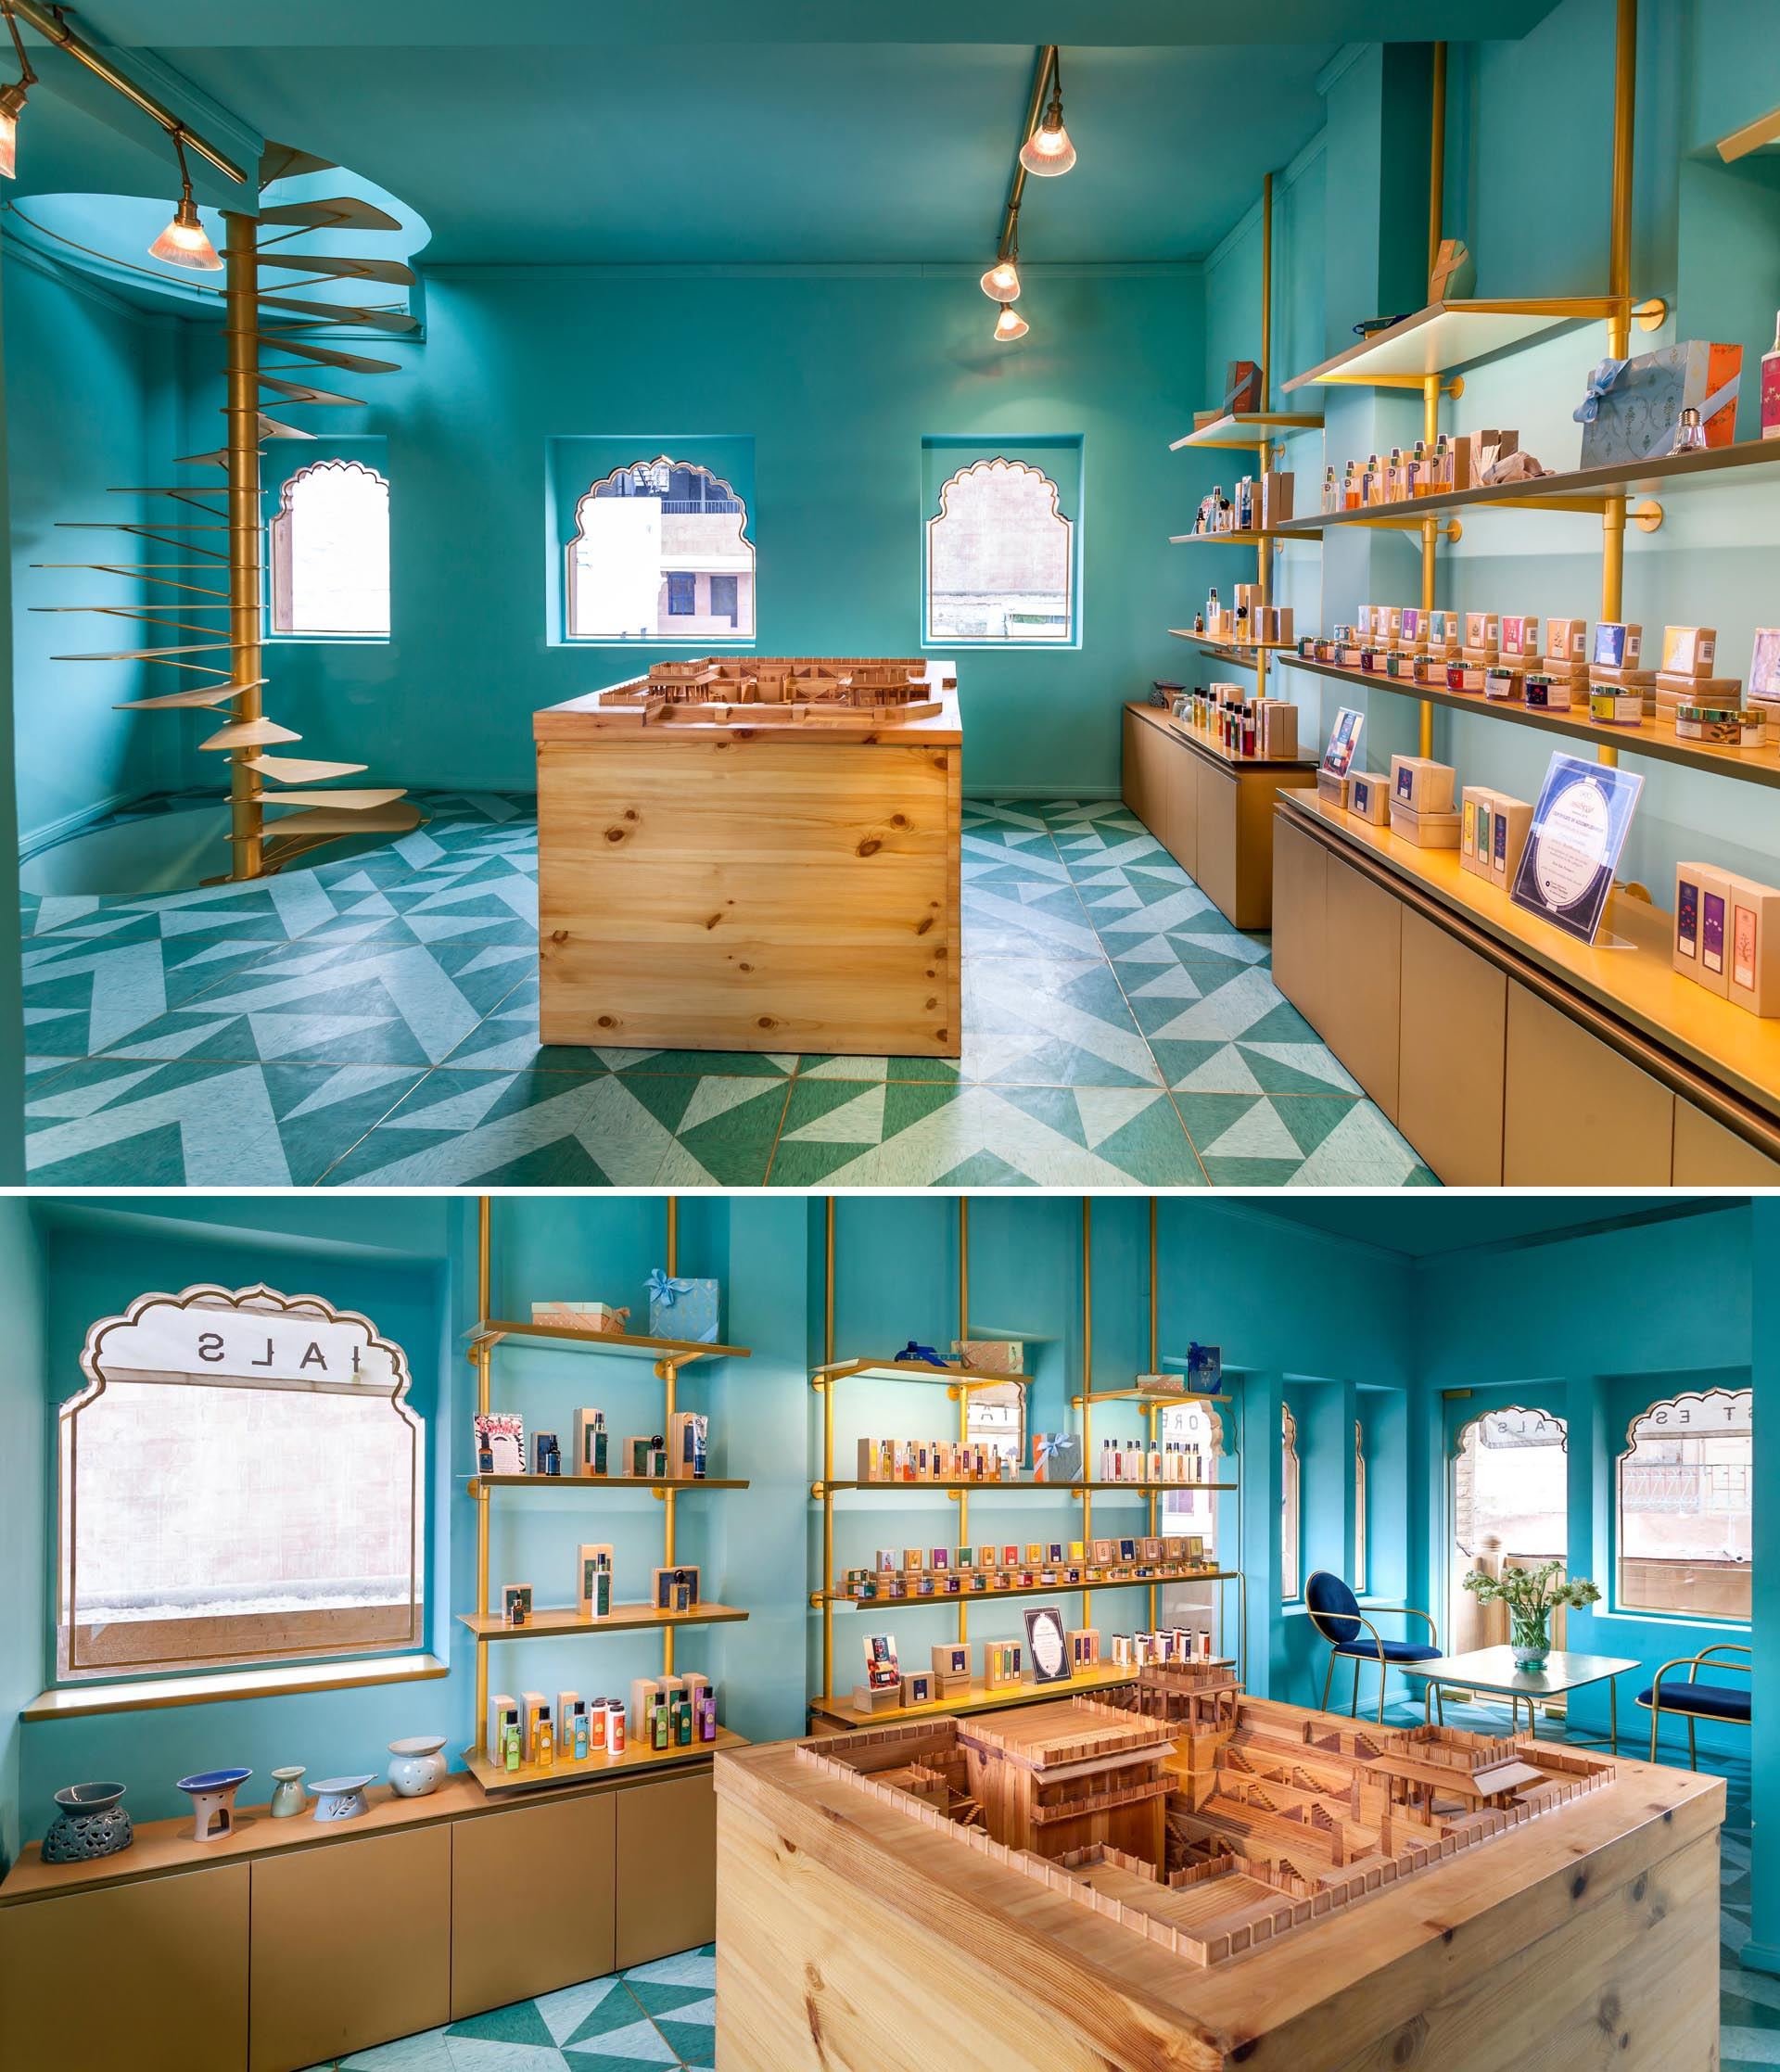 A modern retail store with teal blue/green walls, gold shelving, spiral stairs, and patterned floor.